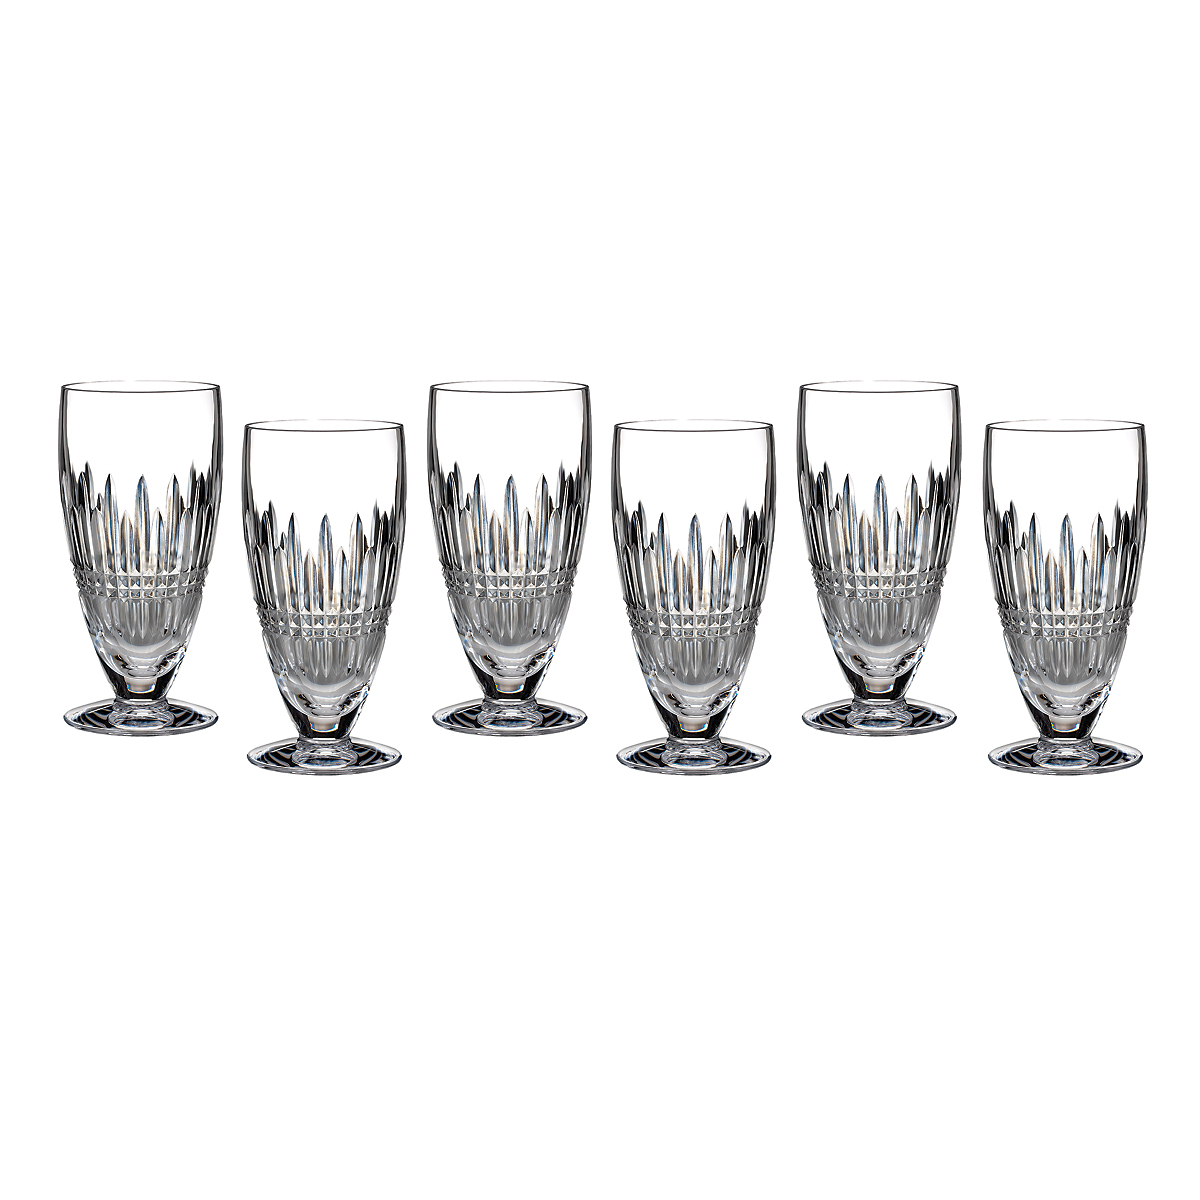 Waterford Lismore Diamond Iced Beverage Glasses, Set of 6